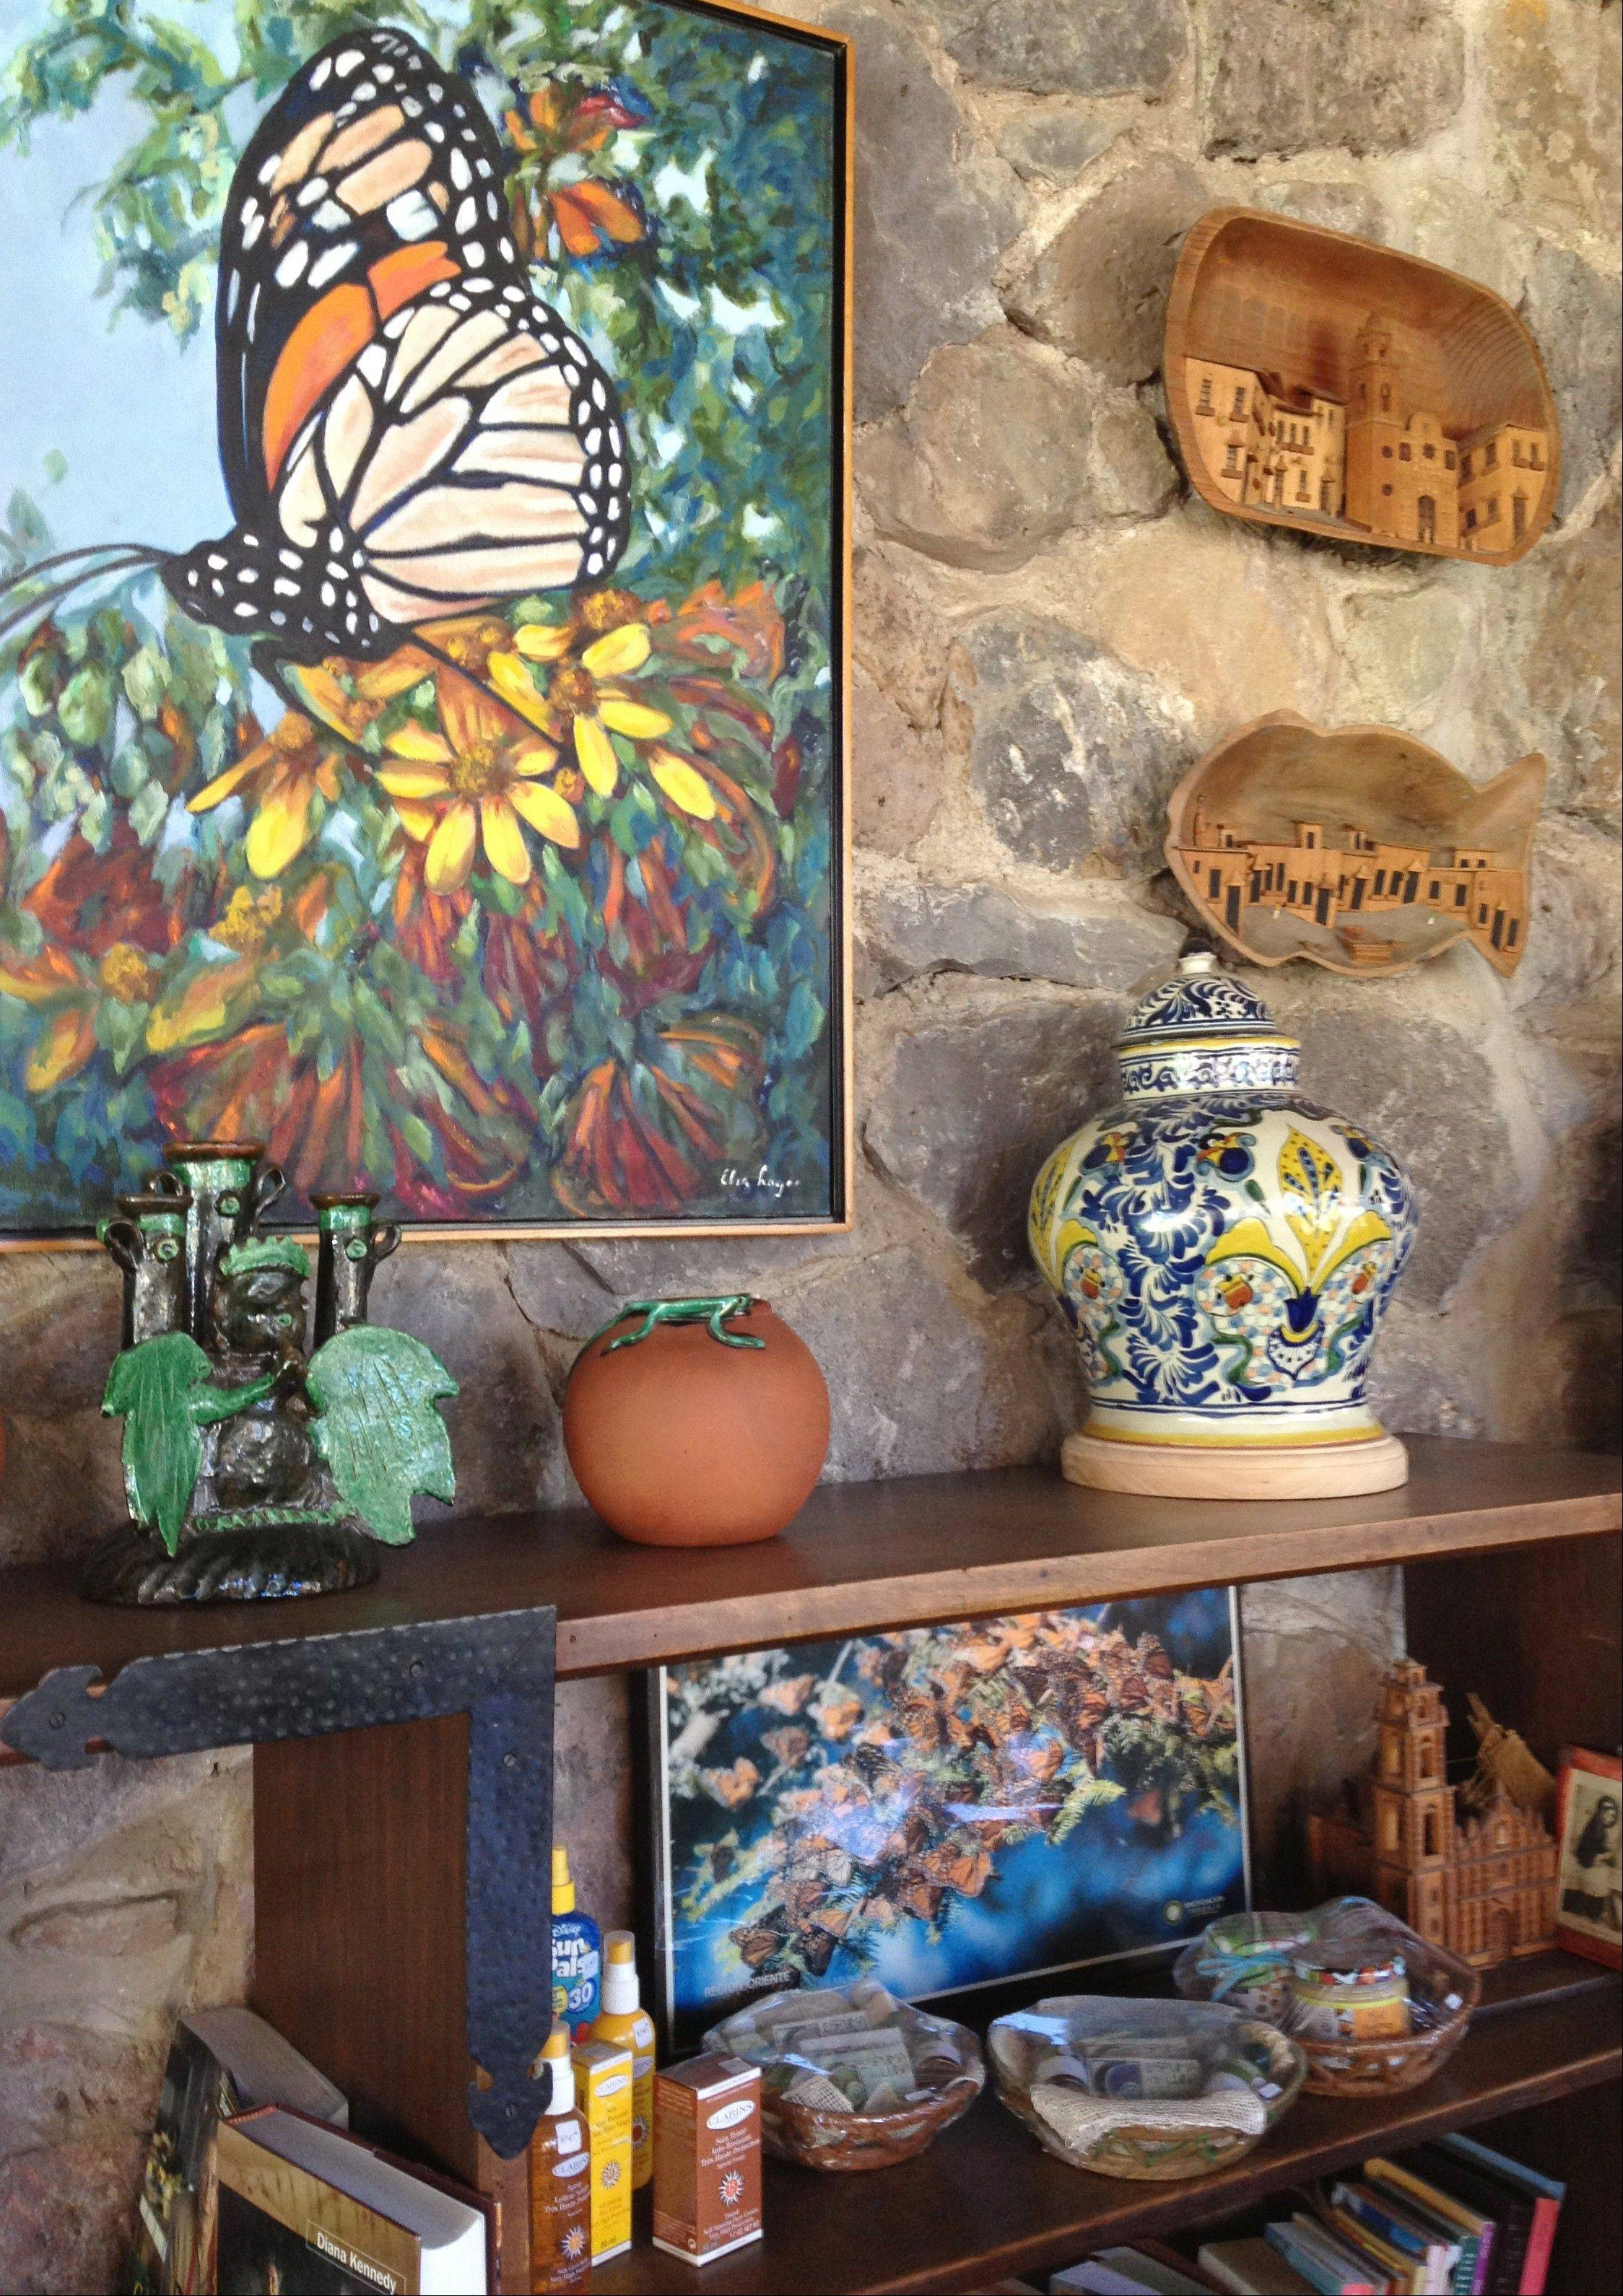 A painting of a Monarch butterfly is displayed in the reception area of Rancho San Cayetano, a hotel near near Zitacuaro, in the central Mexican state of Michoacan.